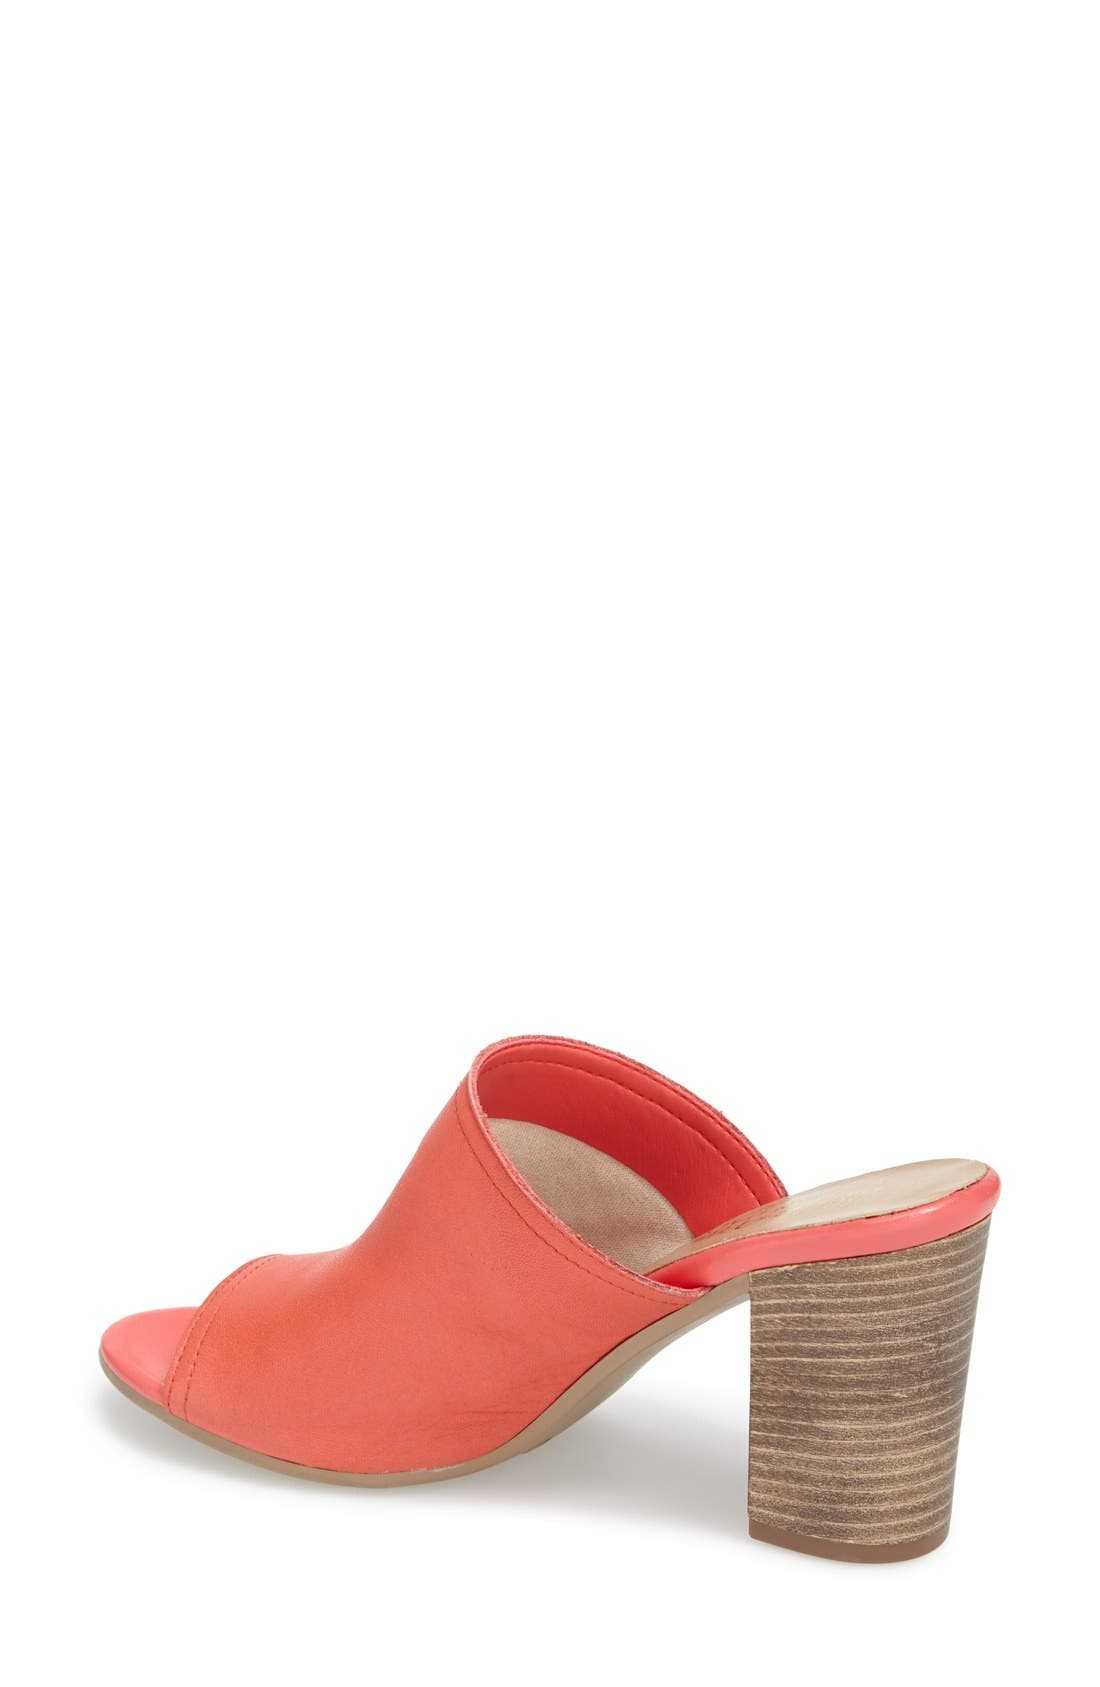 'Arno' Leather Mule,                             Alternate thumbnail 10, color,